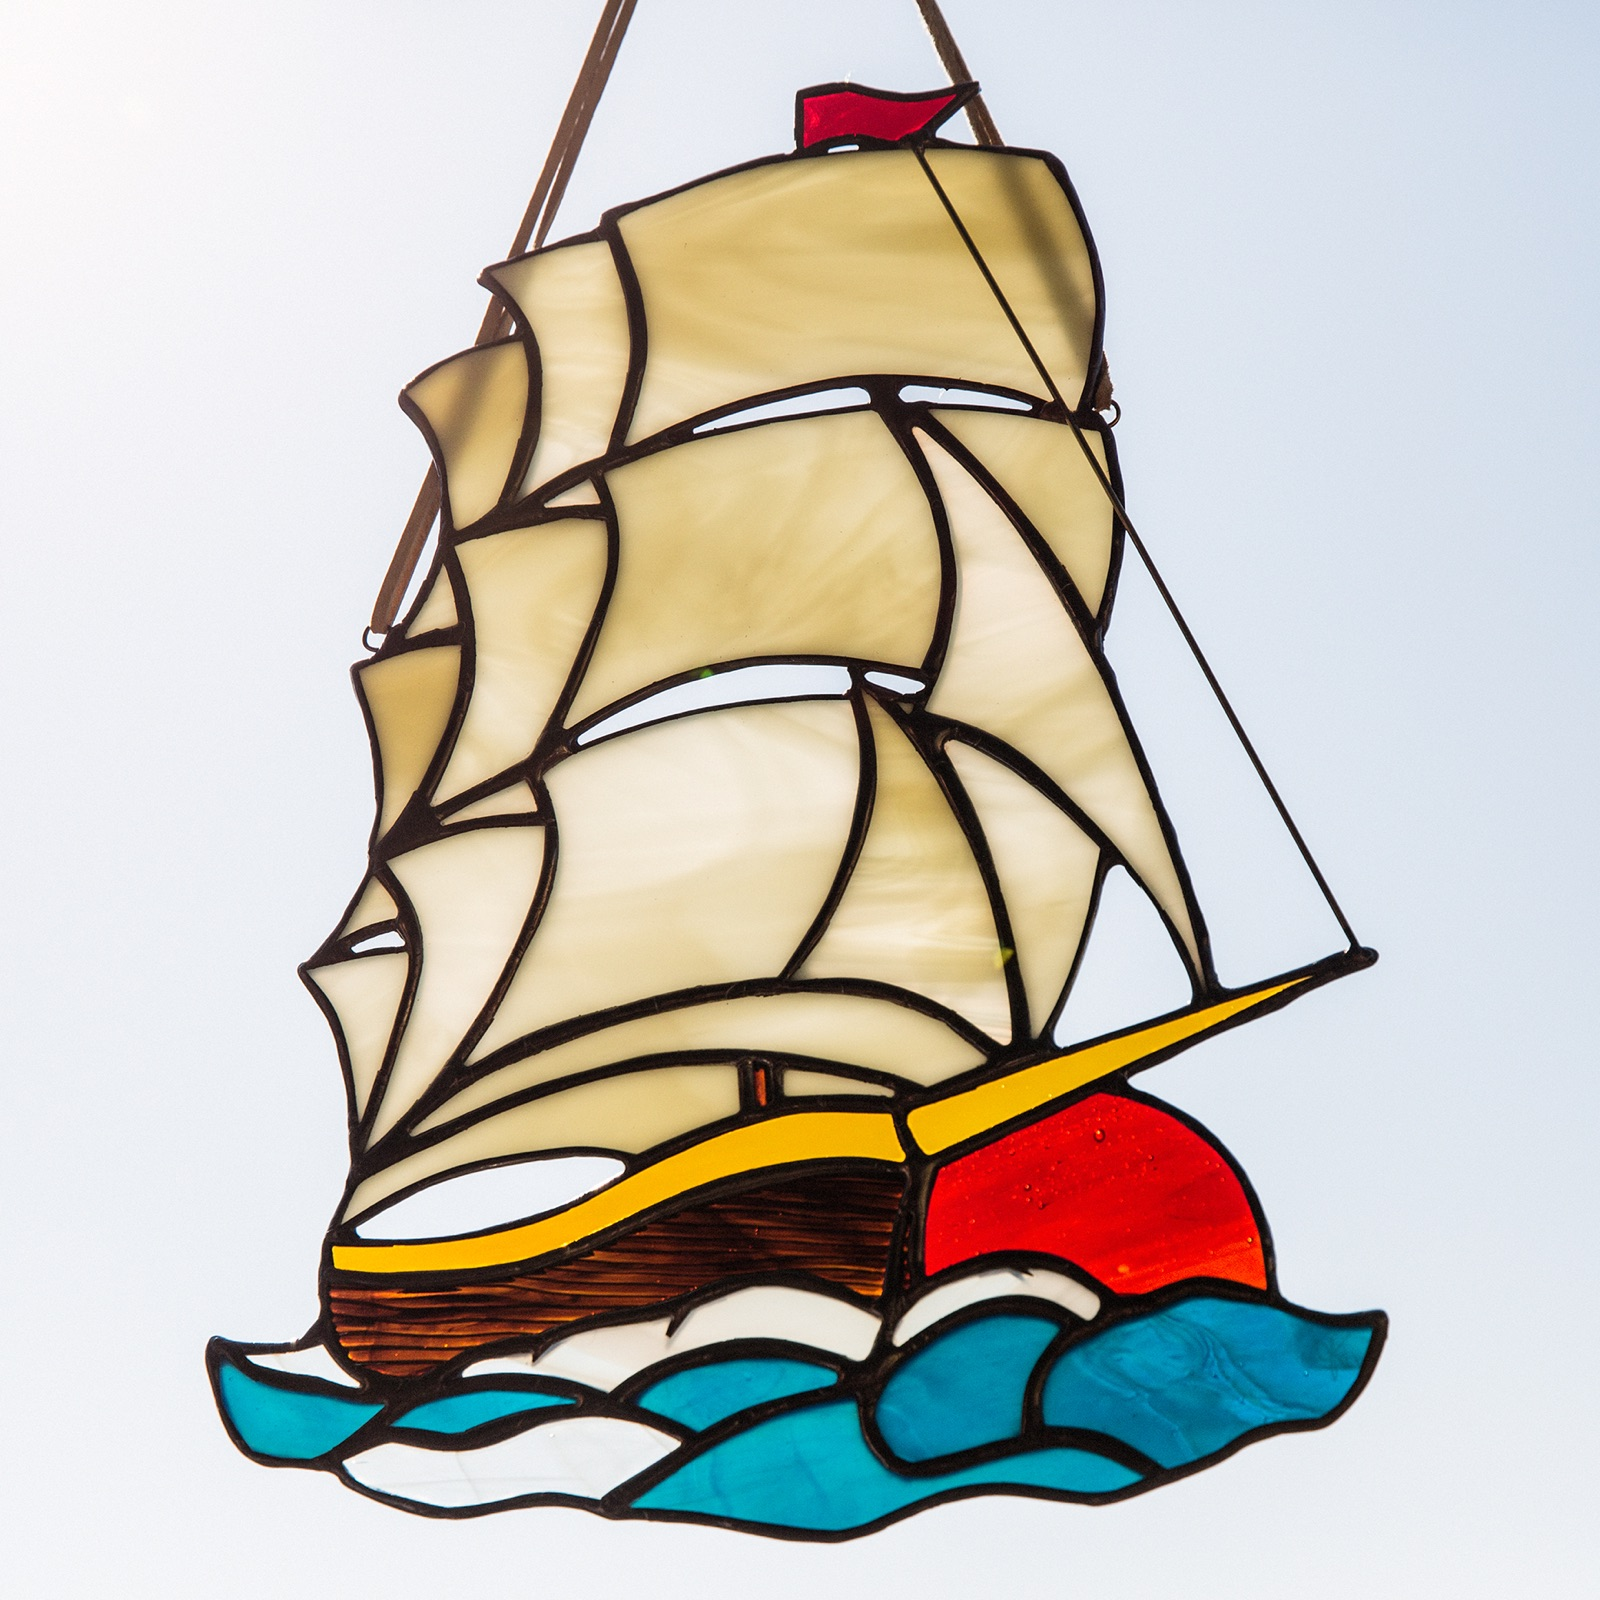 Sailor Jerry inspired ship for a nursery